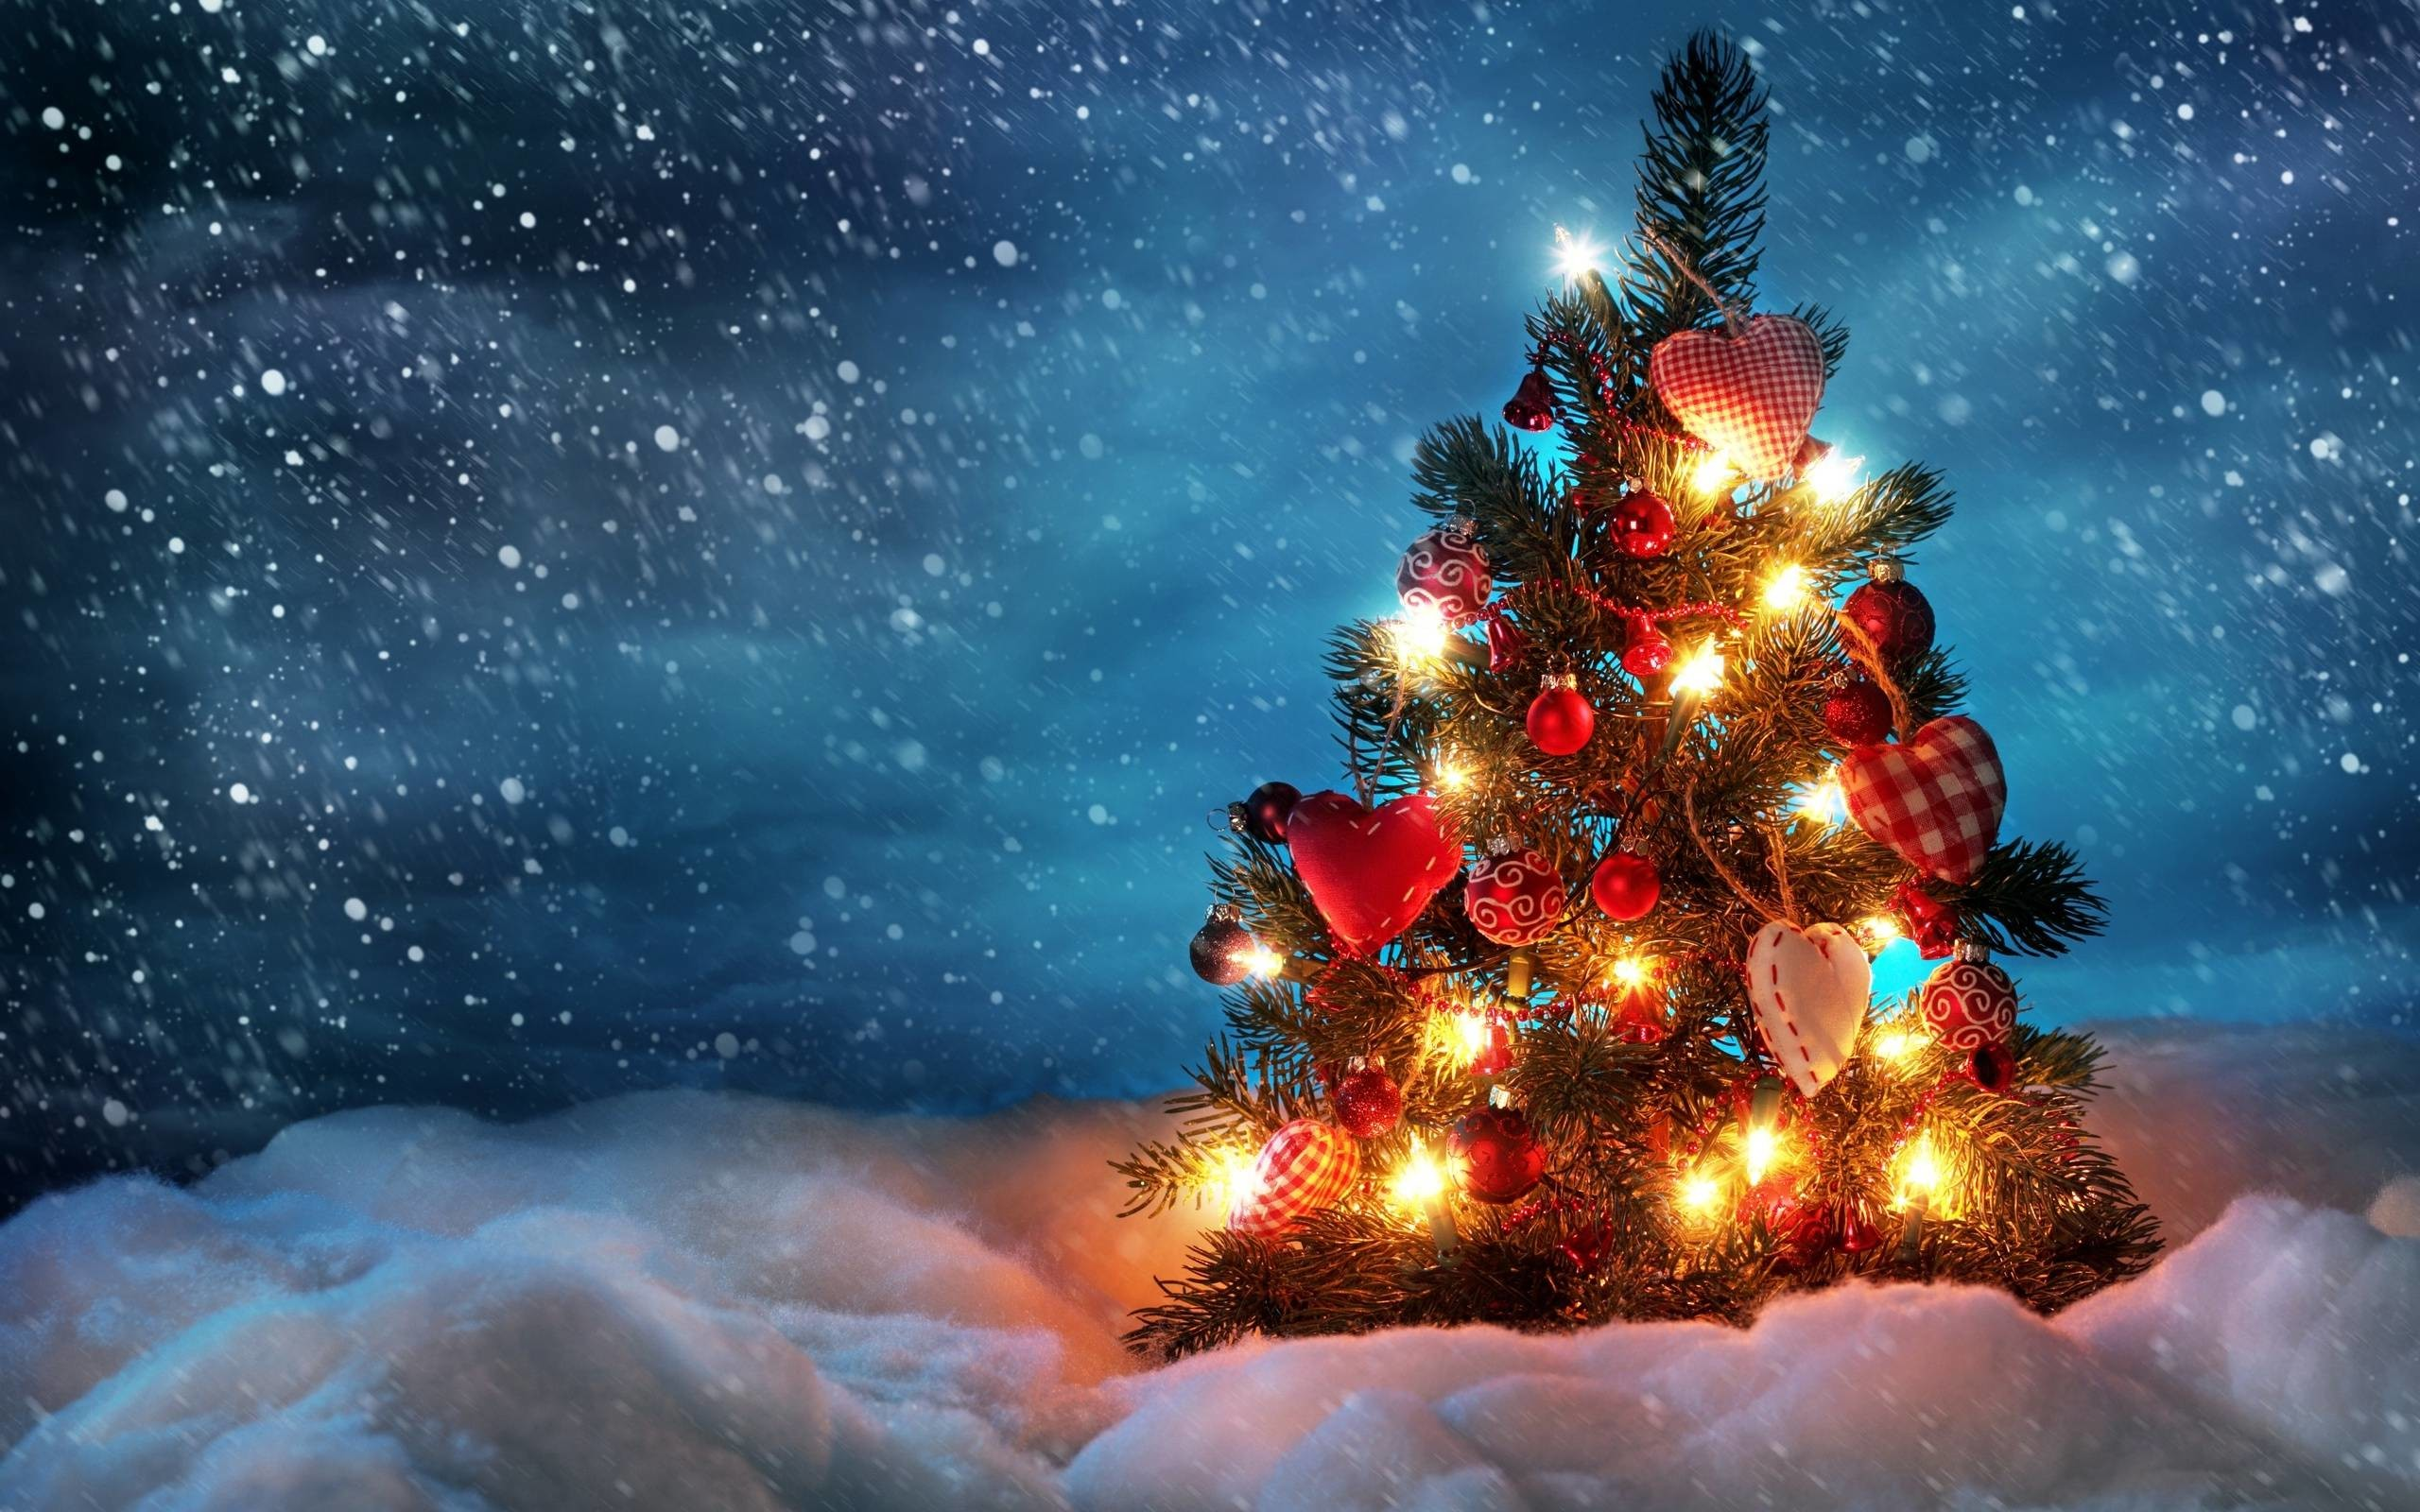 2560x1600 Wallpapers For Christmas Lights Snow Desktop Background Download Top